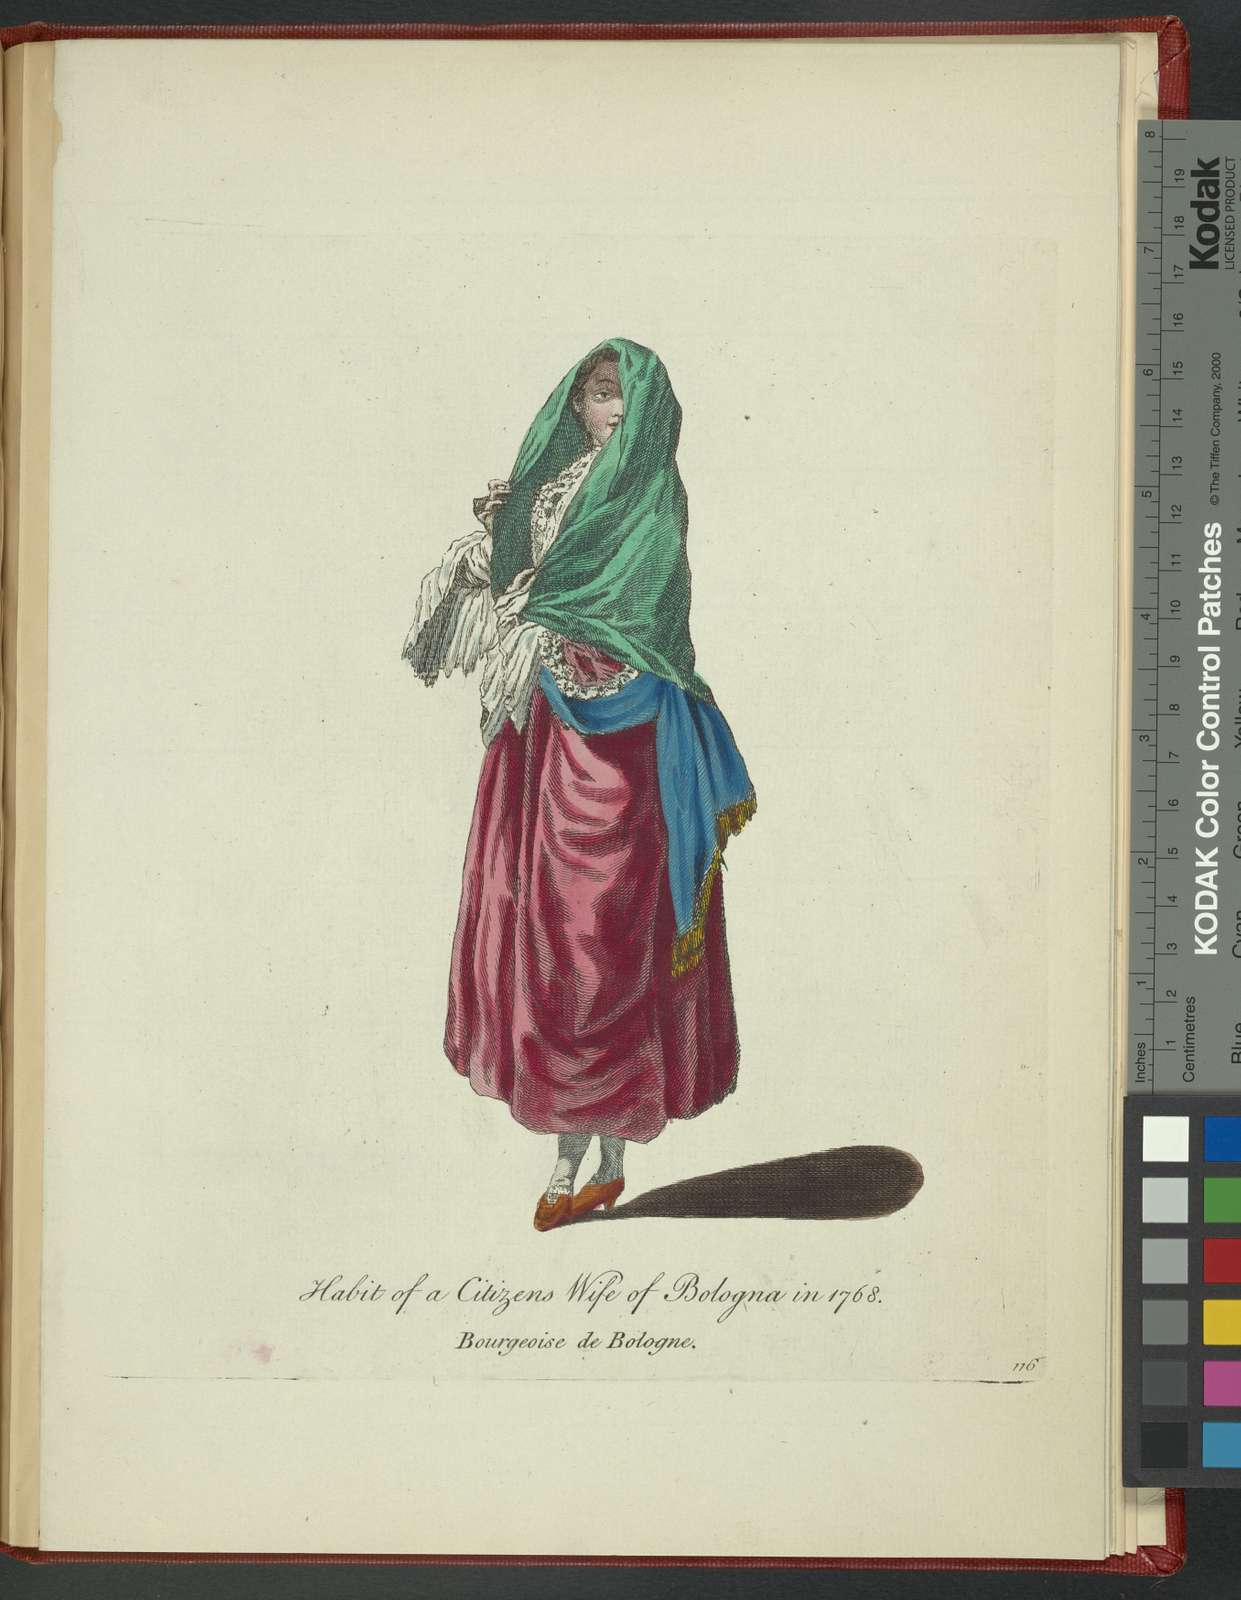 Habit of a citizen's wife of Bologna in 1768. Bourgeoise de Bologne.